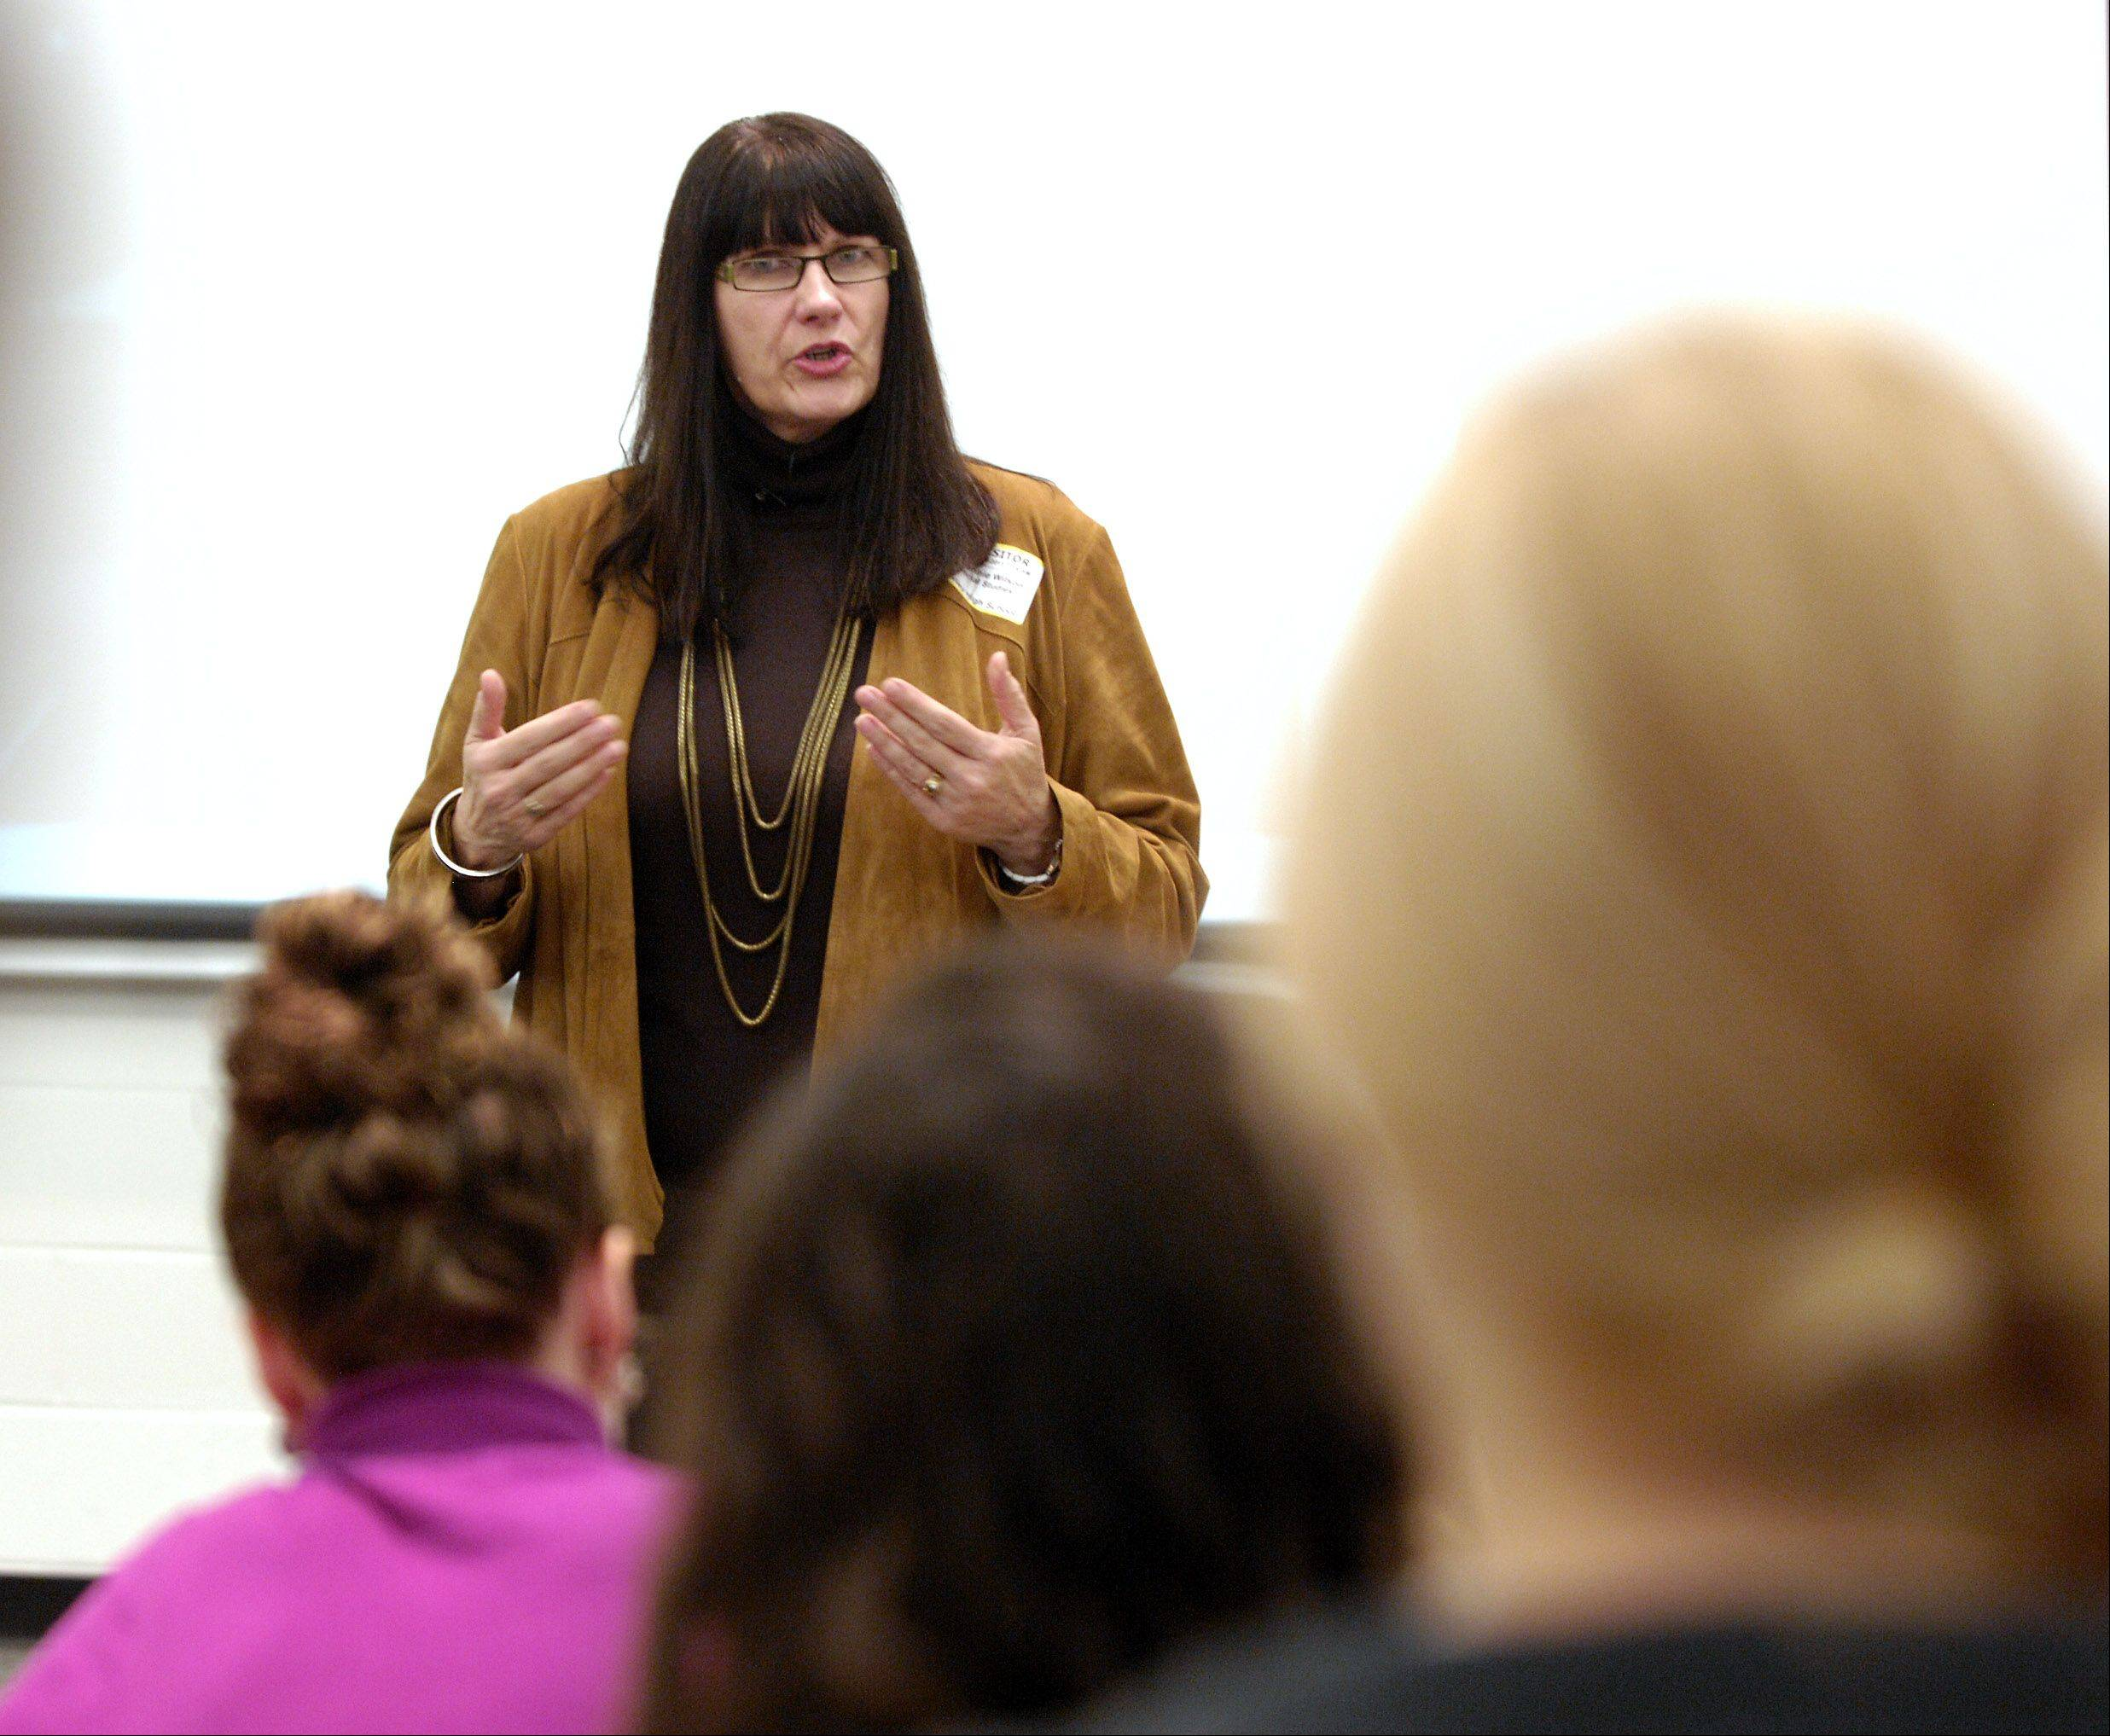 Connie Wilson of Naperville, the jury forewoman during the second Rod Blagojevich trial, spoke to students at Metea Valley High School on Tuesday about the experience. Attorneys for the ex-governor say she may have engaged in juror misconduct for showing copies of her juror questionnaire.